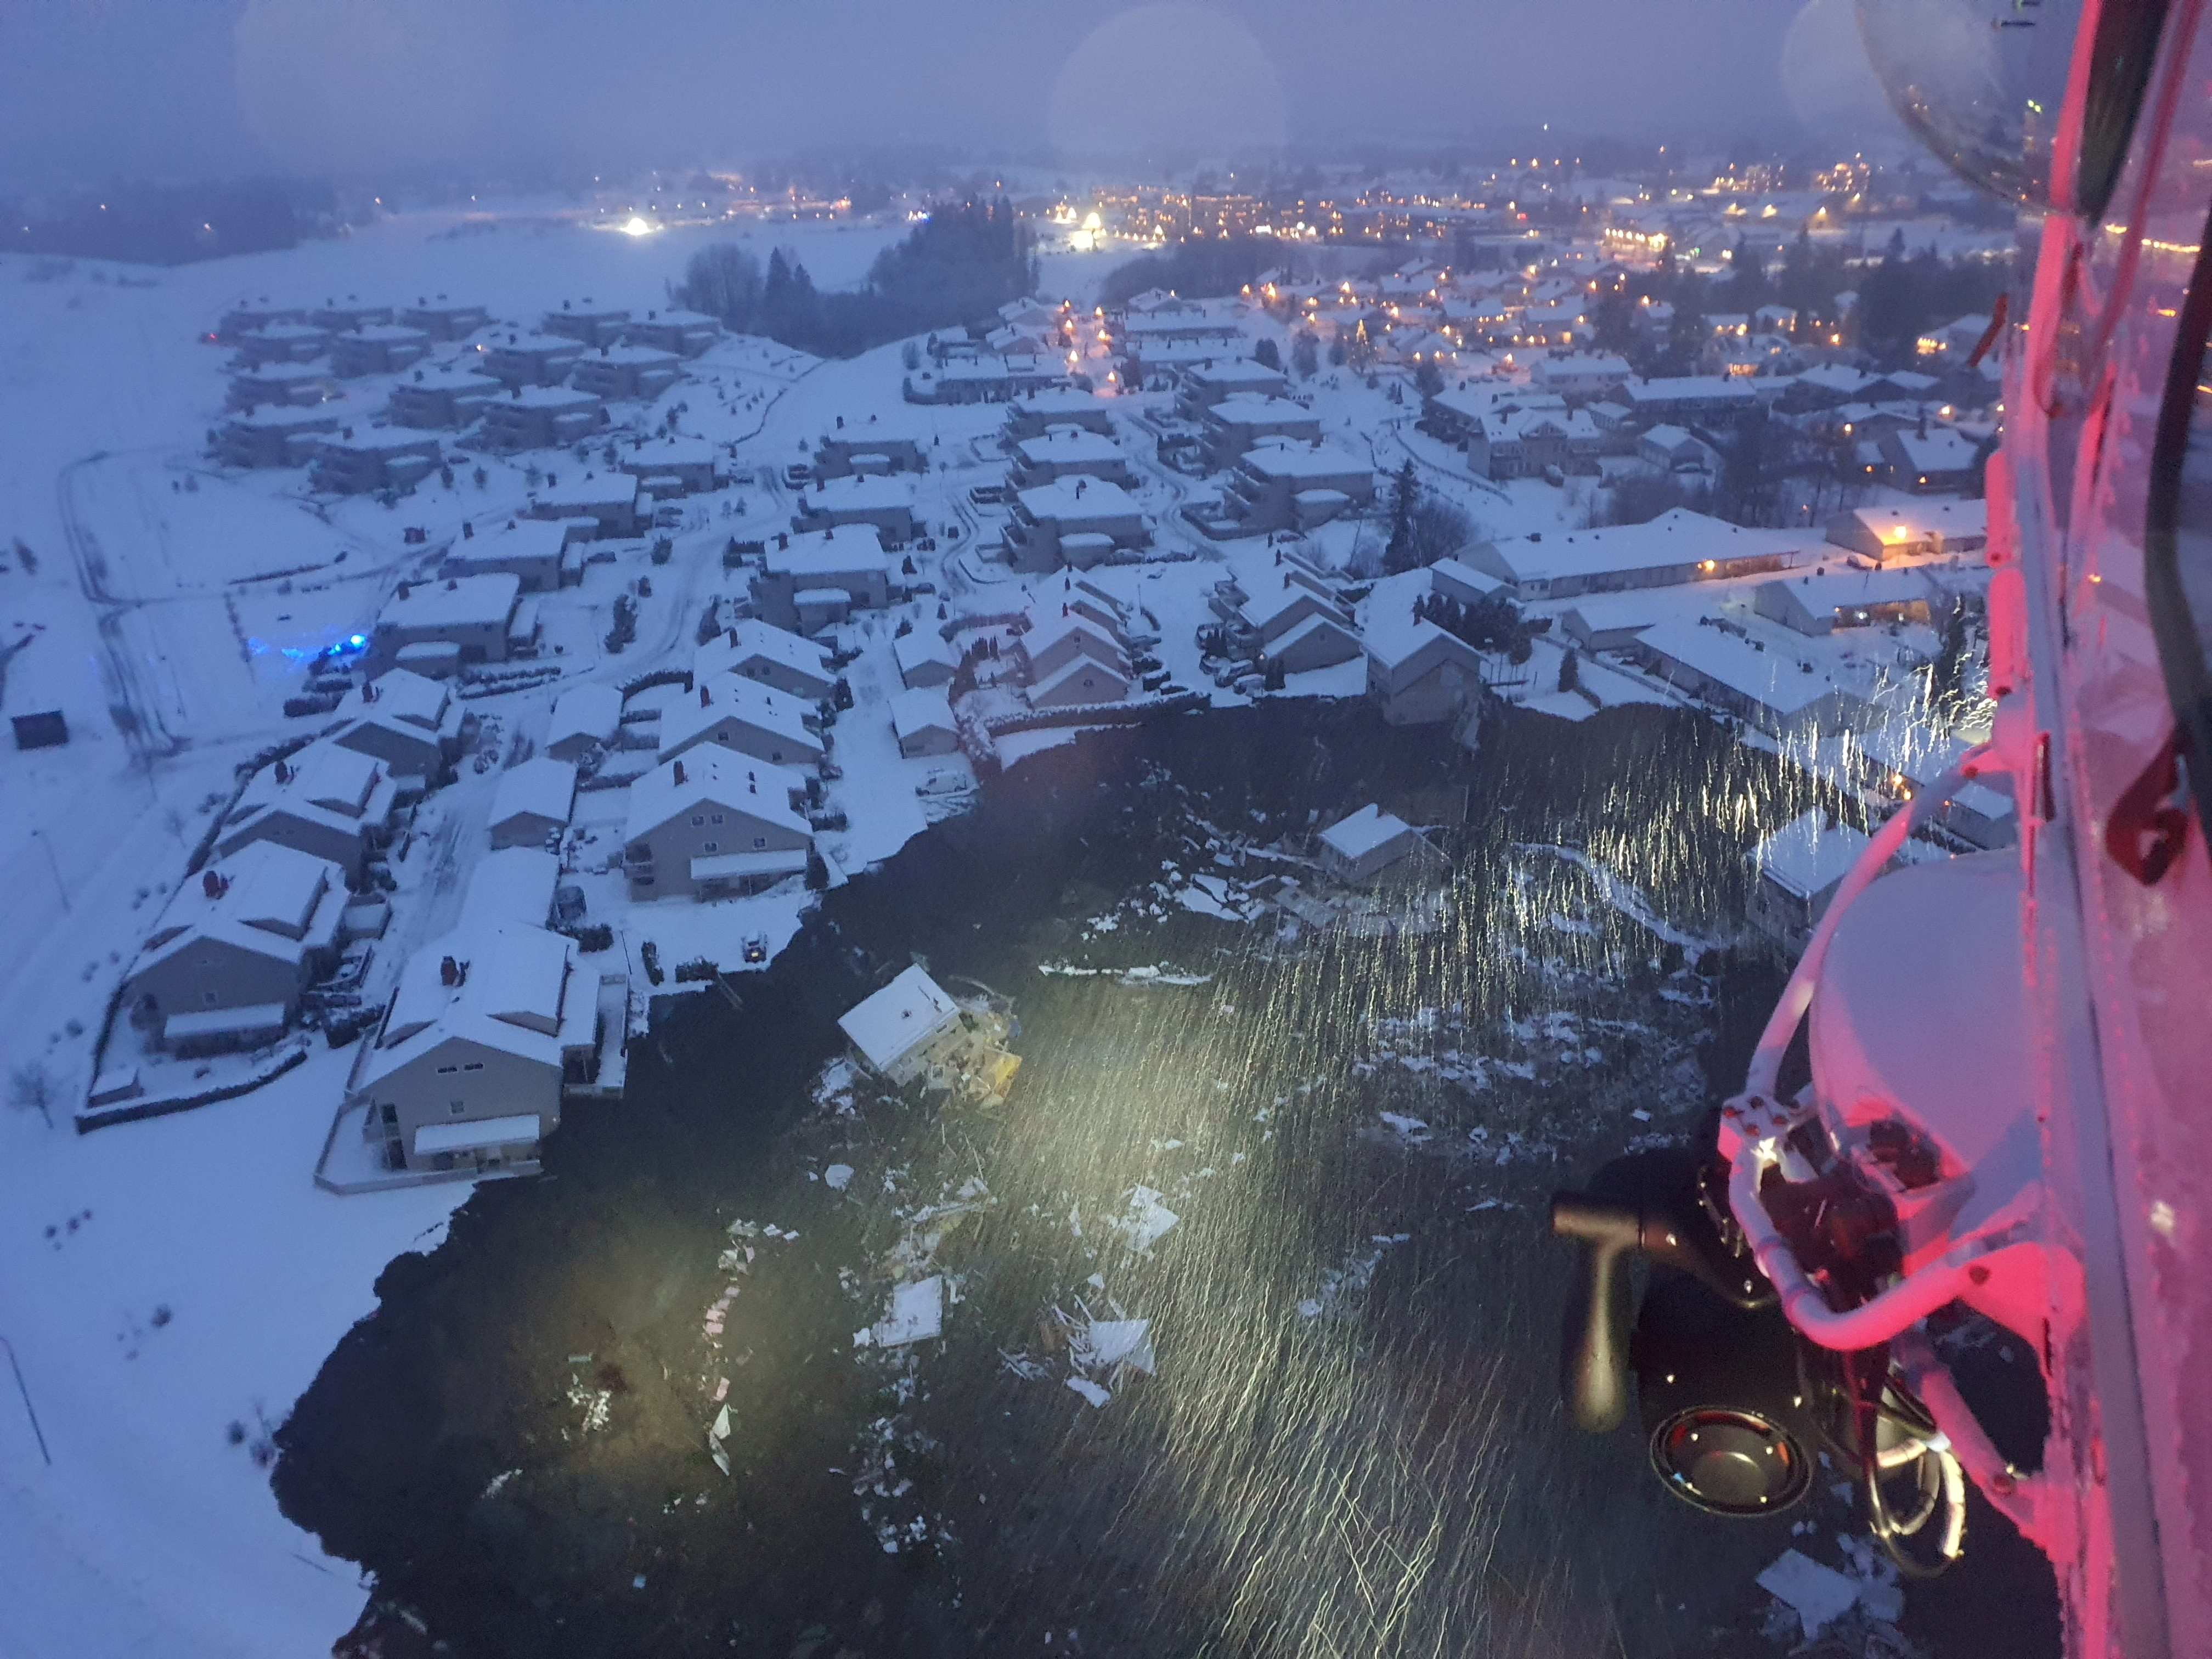 A rescue helicopter view shows the aftermath of a landslide at a residential area in Ask village, about 40km north of Oslo, Norway December 30, 2020. According to police several people went missing. Norwegian Rescue Service/NTB/via REUTERS